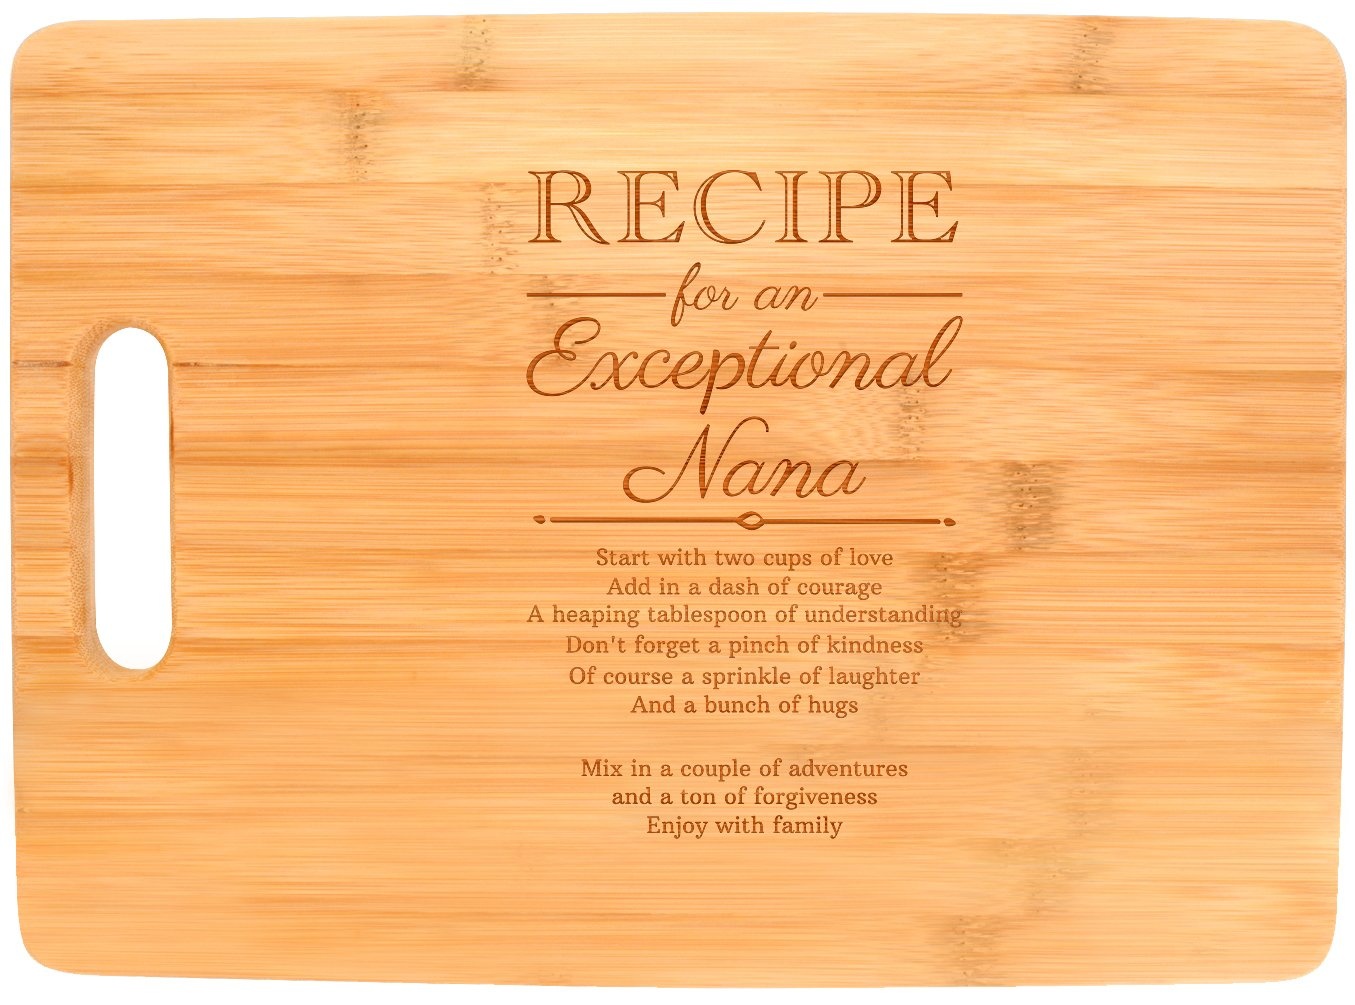 Mothers Day Gifts for Grandma Nana Recipe for an Exceptional Nana Mother Day Gifts Birthday Gifts for Grandma Unique Gifts for Grandma Big Rectangle Bamboo Cutting Board